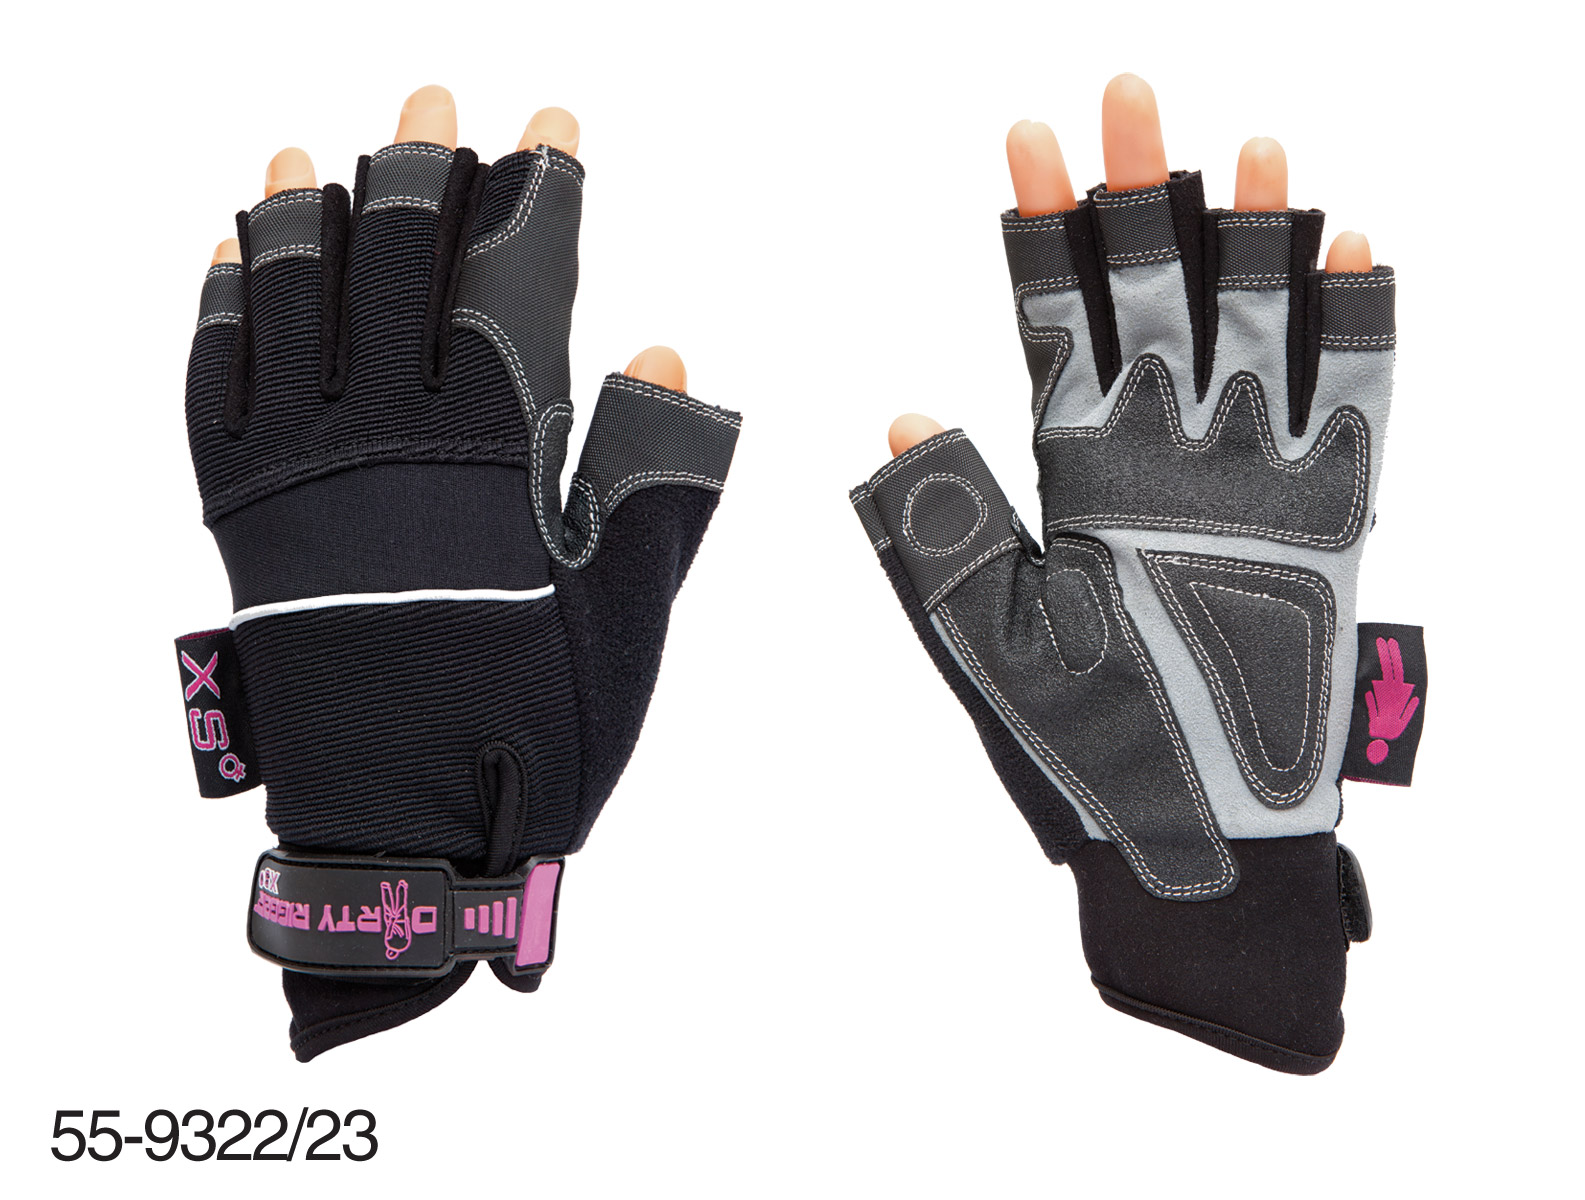 DIRTY RIGGER XS WOMANS GLOVES Fingerless, extra small (pair)